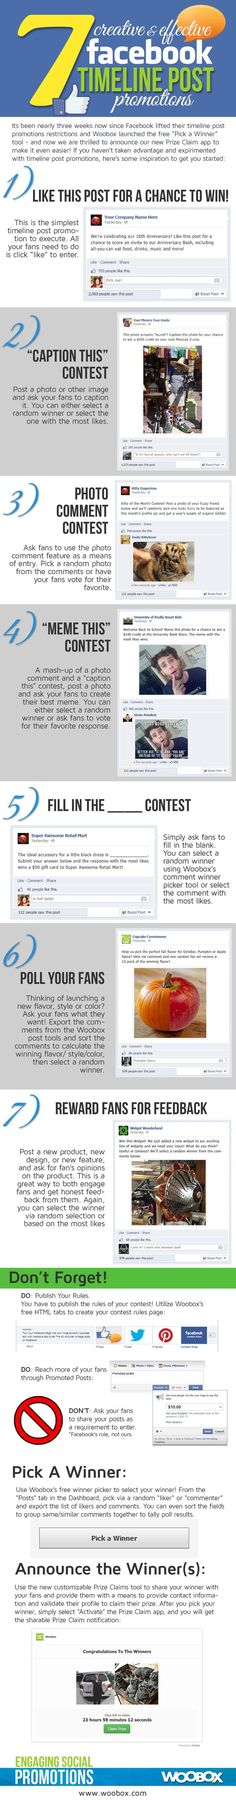 Facebook Promotions Ideas Infographic. Open a #Facebook page for an #event